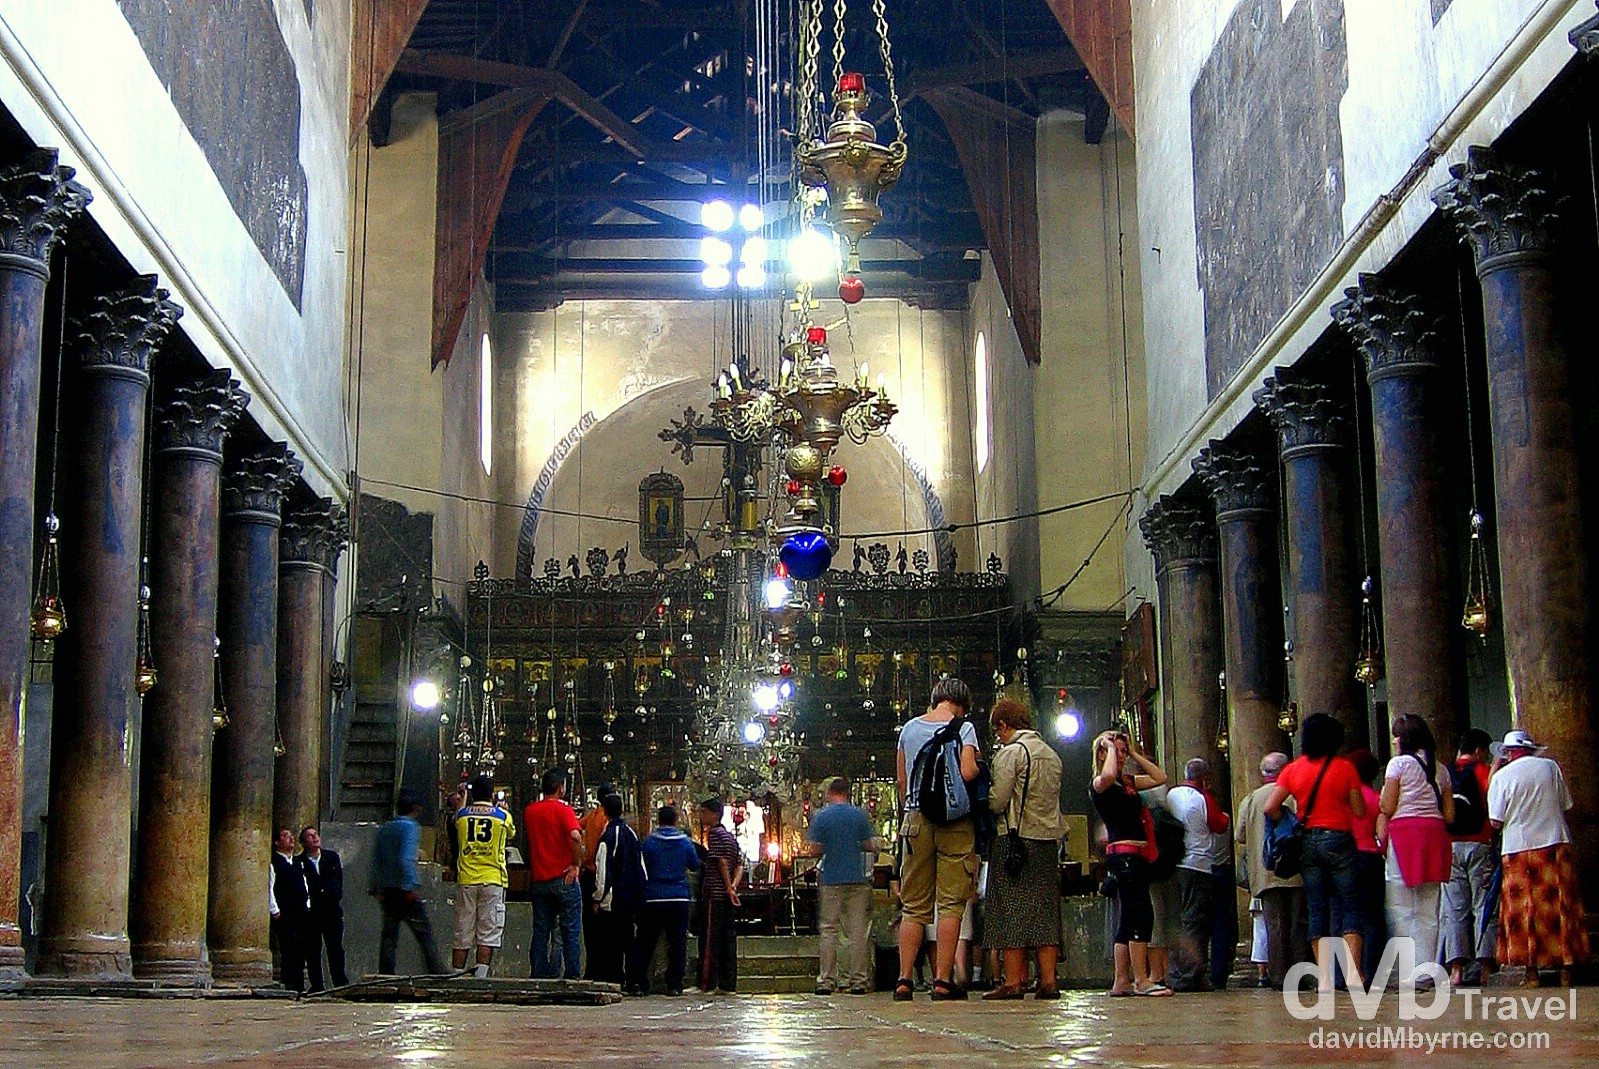 The interior of the Church of the Nativity, traditionally considered to be located over the cave that marks the birthplace of Jesus of Nazareth. Bethlehem, Palestine. May 2, 2008.